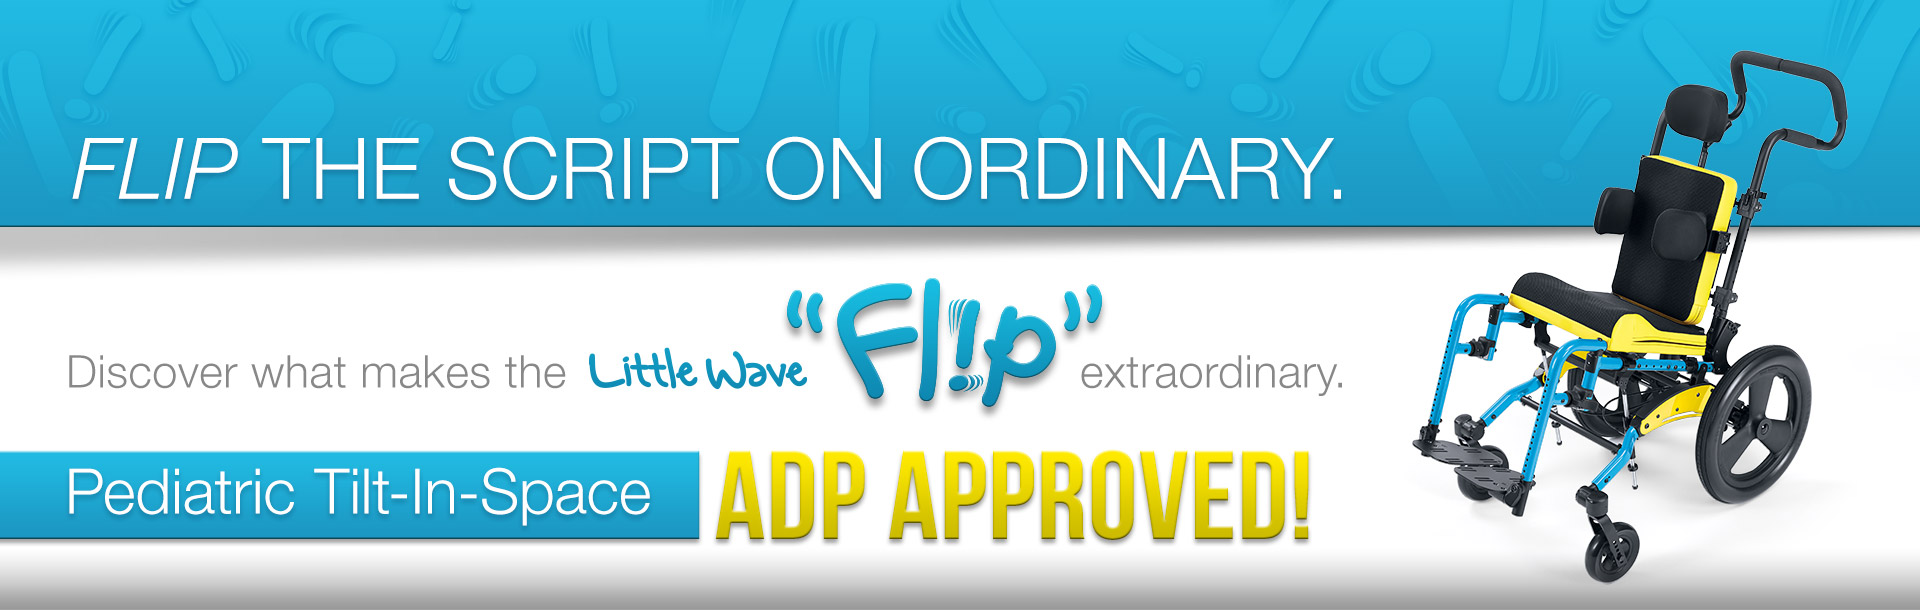 Little Wave Flip is ADP Approved!